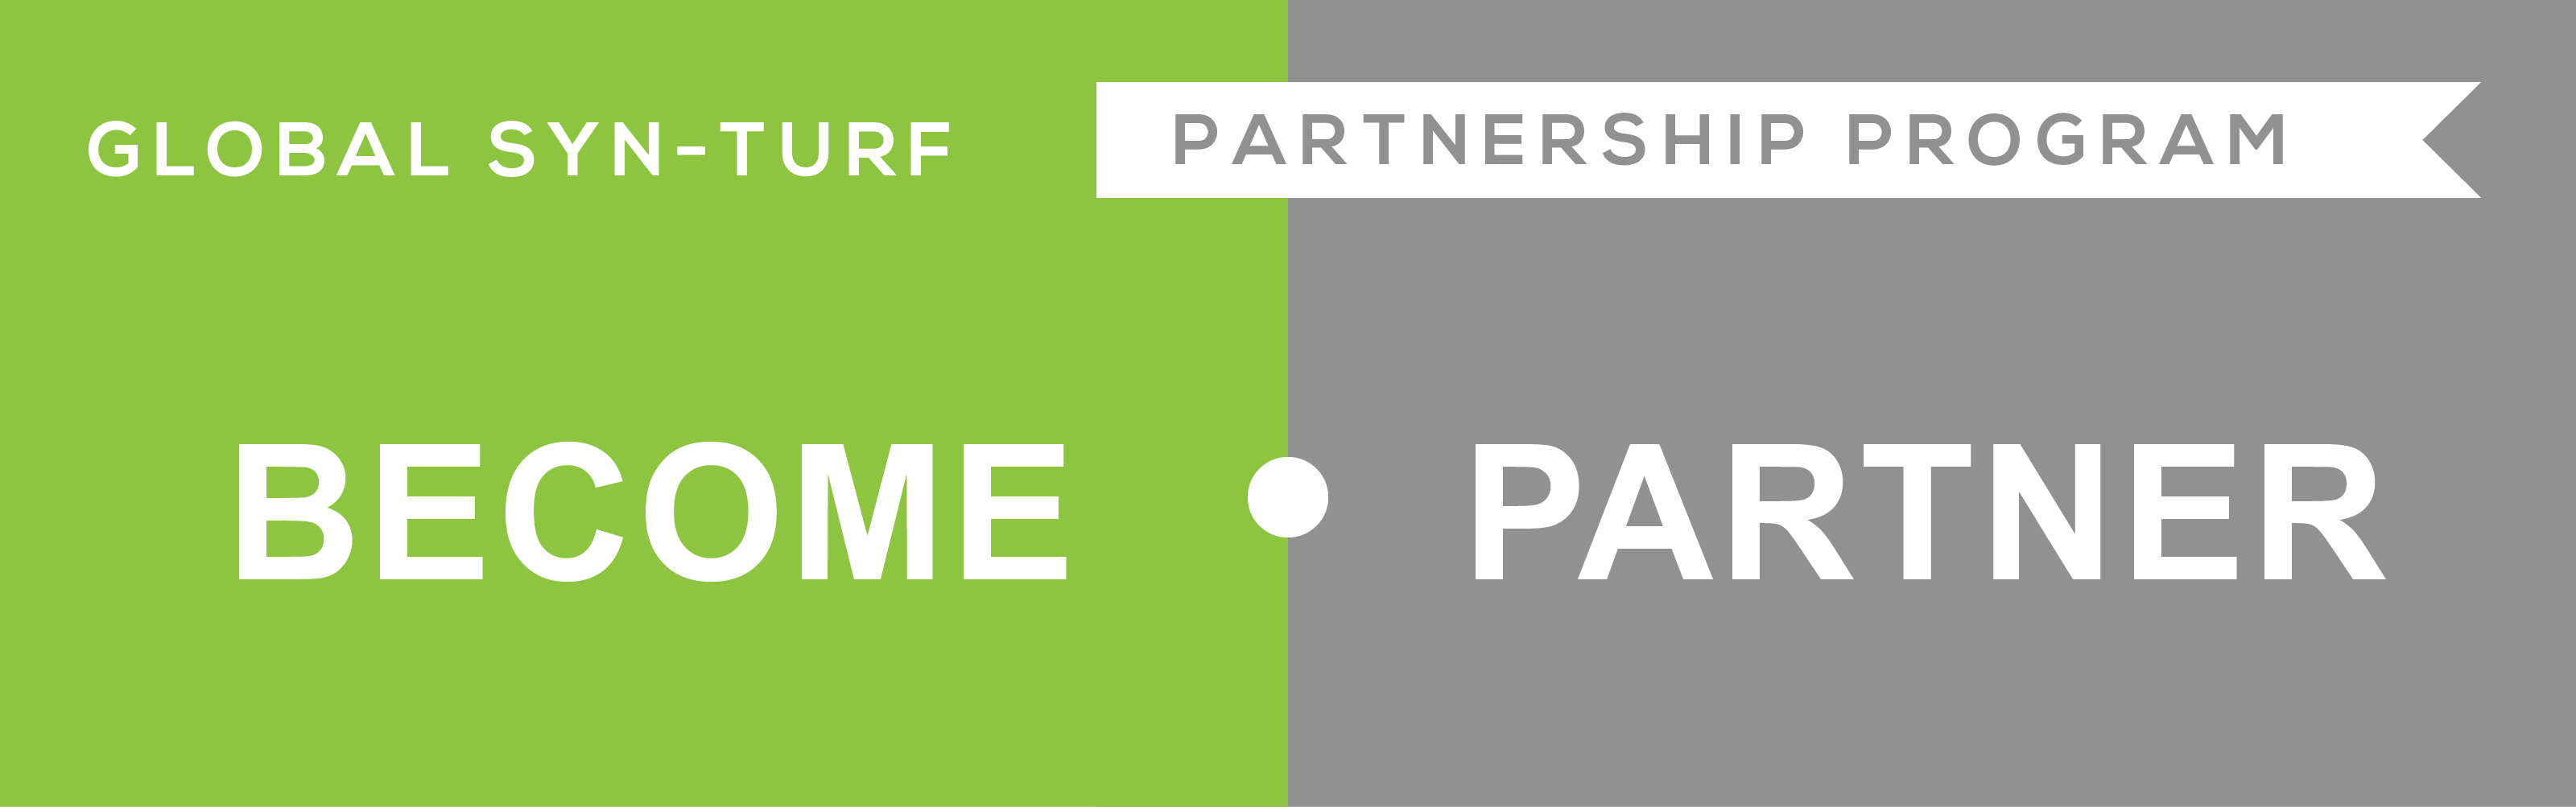 Become Partner - Global Syn-Turf